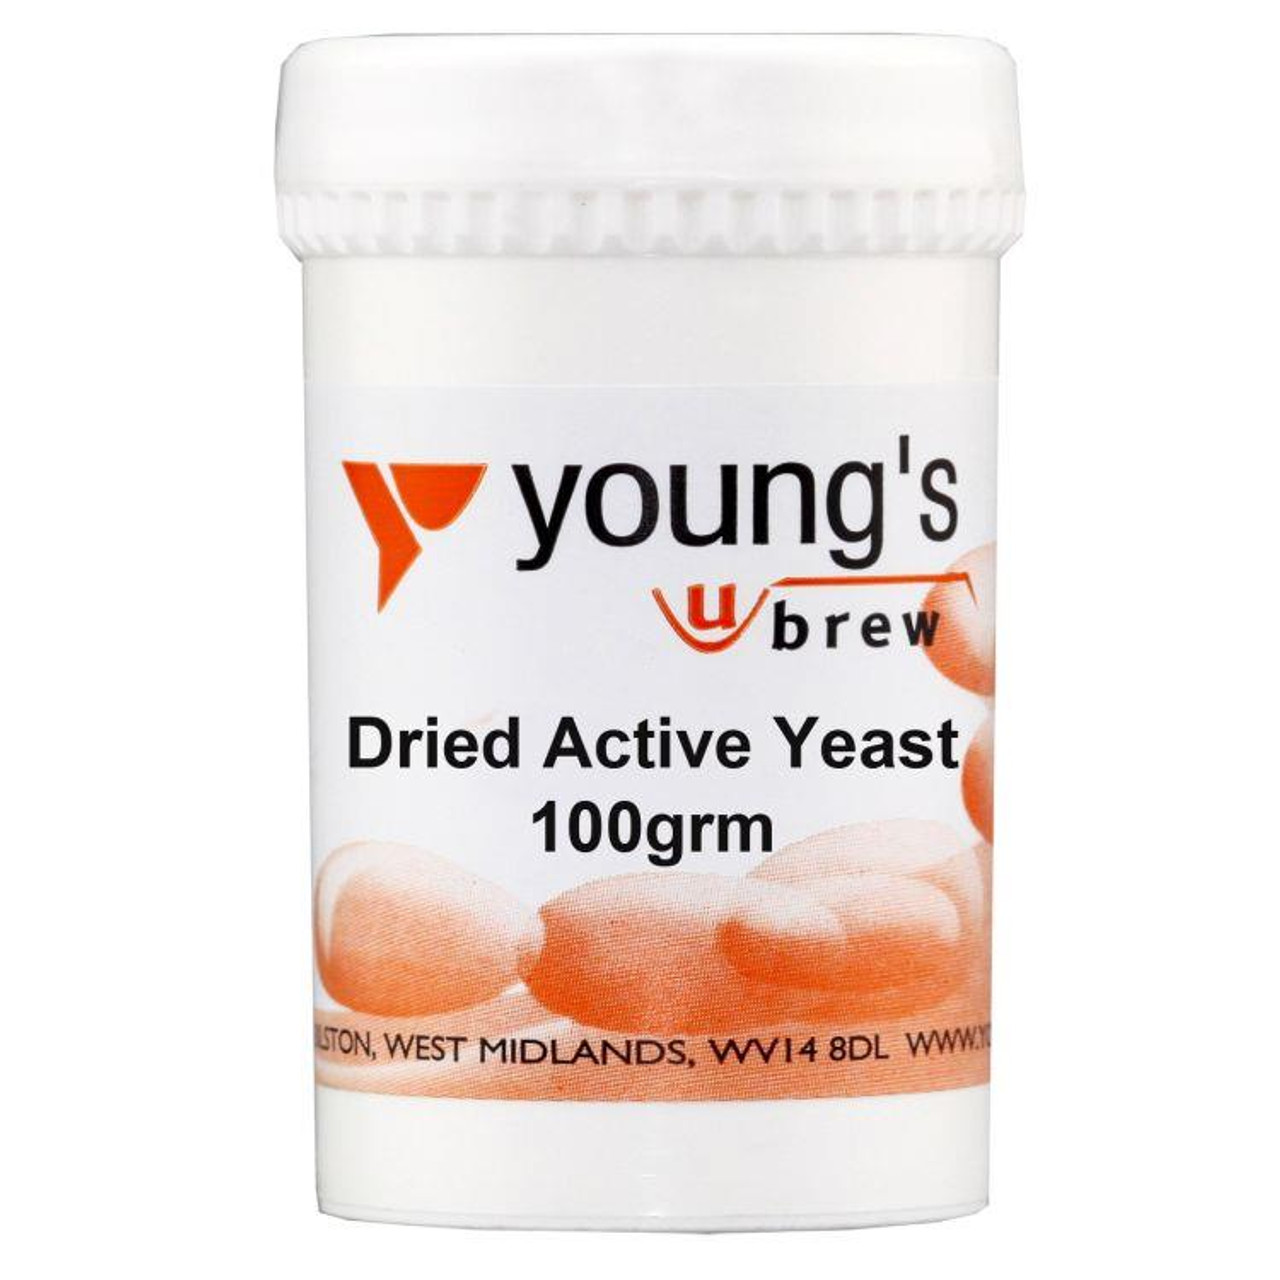 Youngs 100g Dried Active Yeast